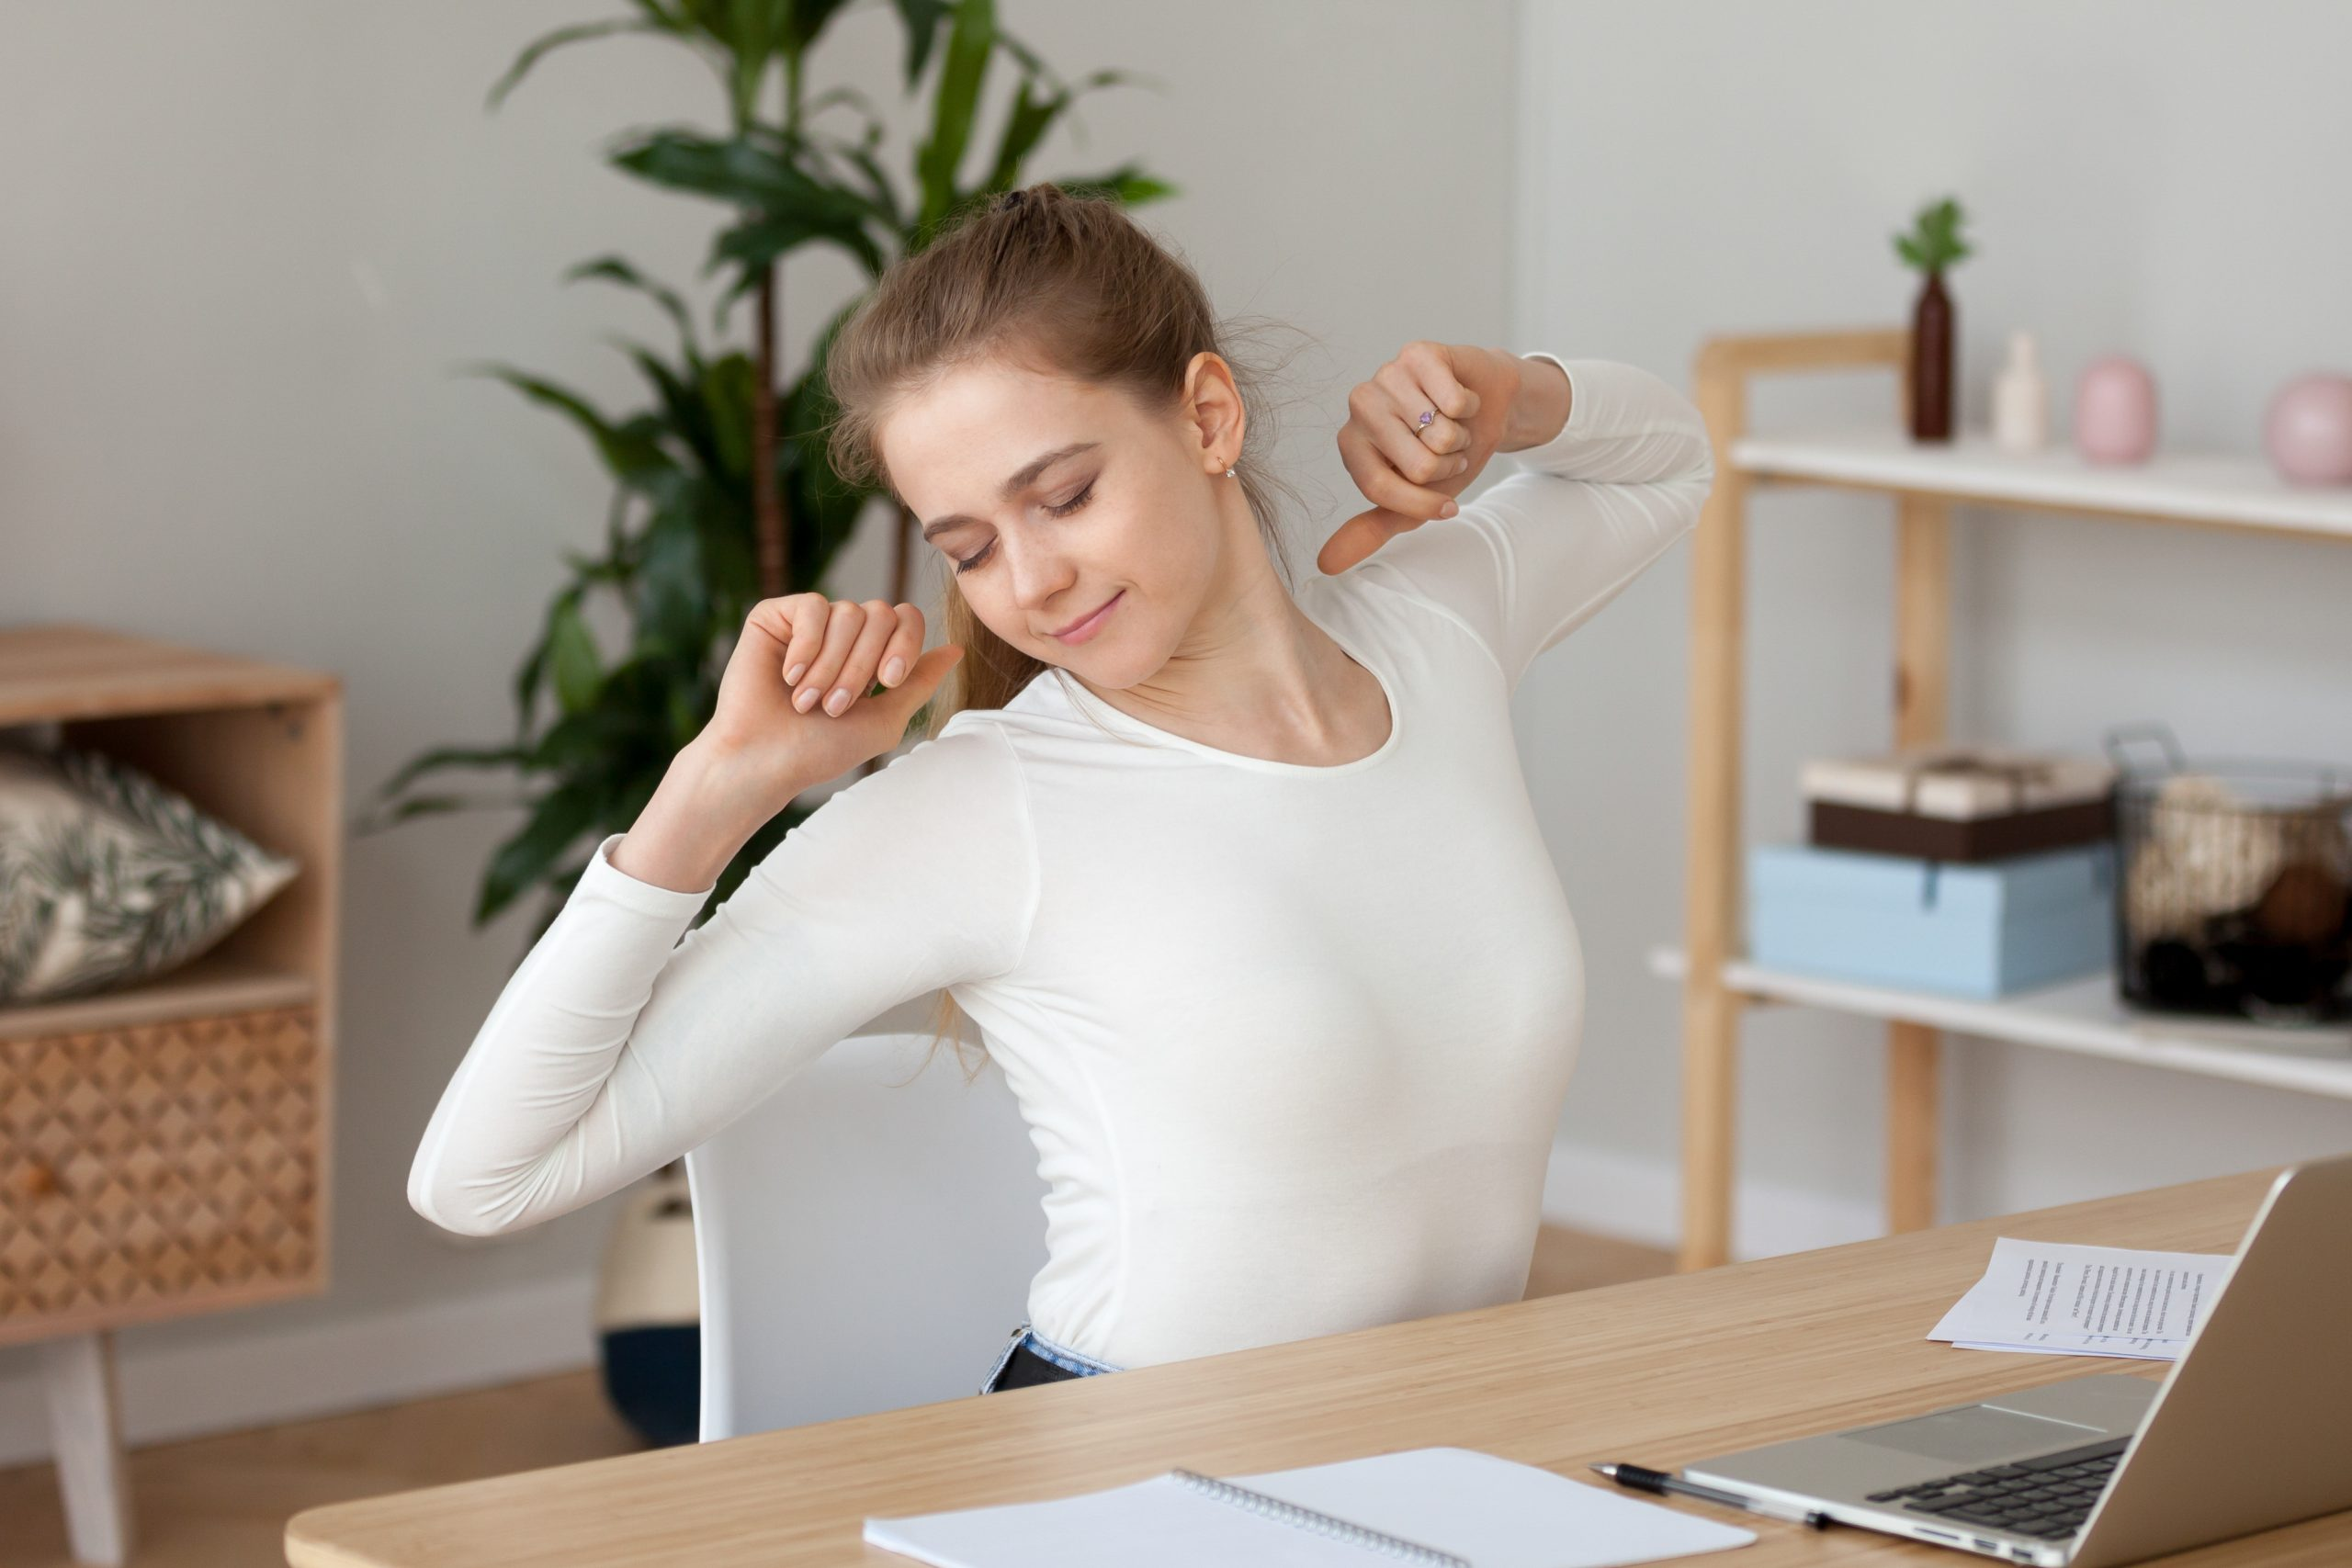 Satisfied young woman stretching, doing exercise with hands behind head in office at workplace, sitting at desk, female employee, student resting, taking break, feeling no stress, relaxing